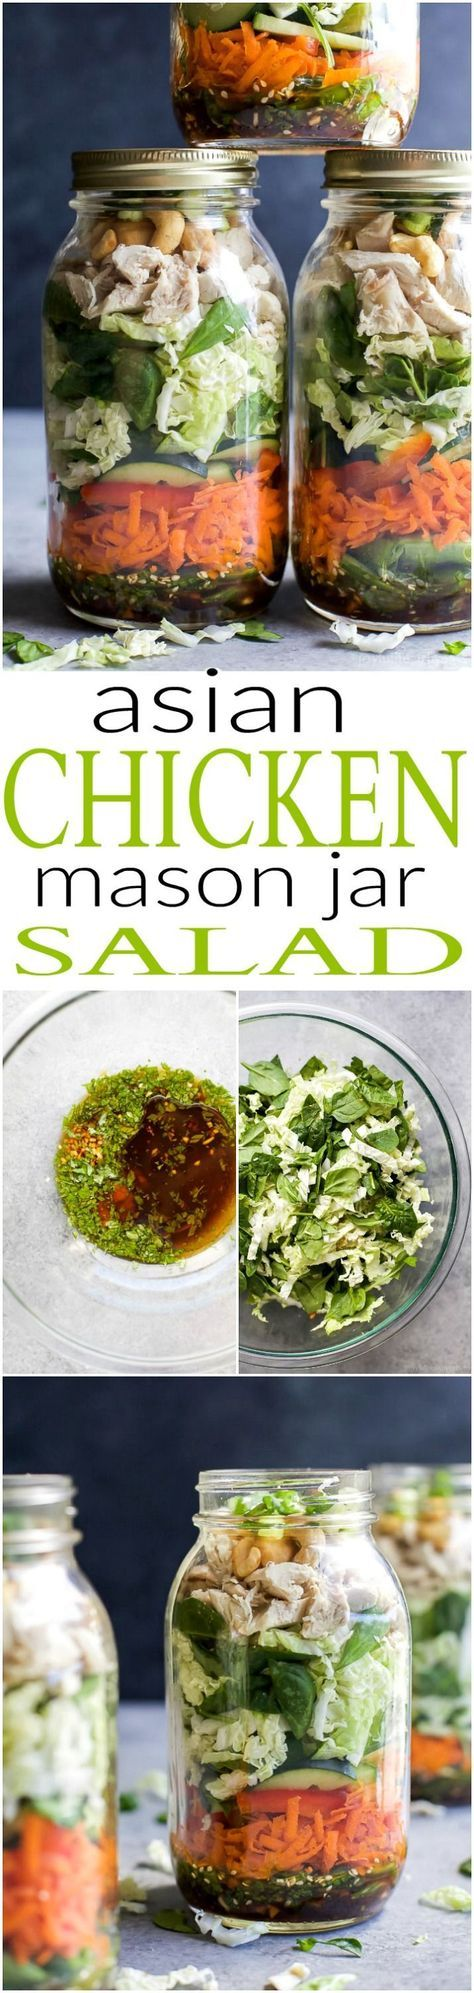 Mason Jar Salad recipes are a delicious, easy, and perfect lunch for the week! This ASIAN CHICKEN MASON JAR SALAD is loaded with veggies, napa cabbage, rotisserie chicken and topped with a Sesame Dressing - done in 30 minutes!   http://joyfulhealthyeats.com   gluten free recipes